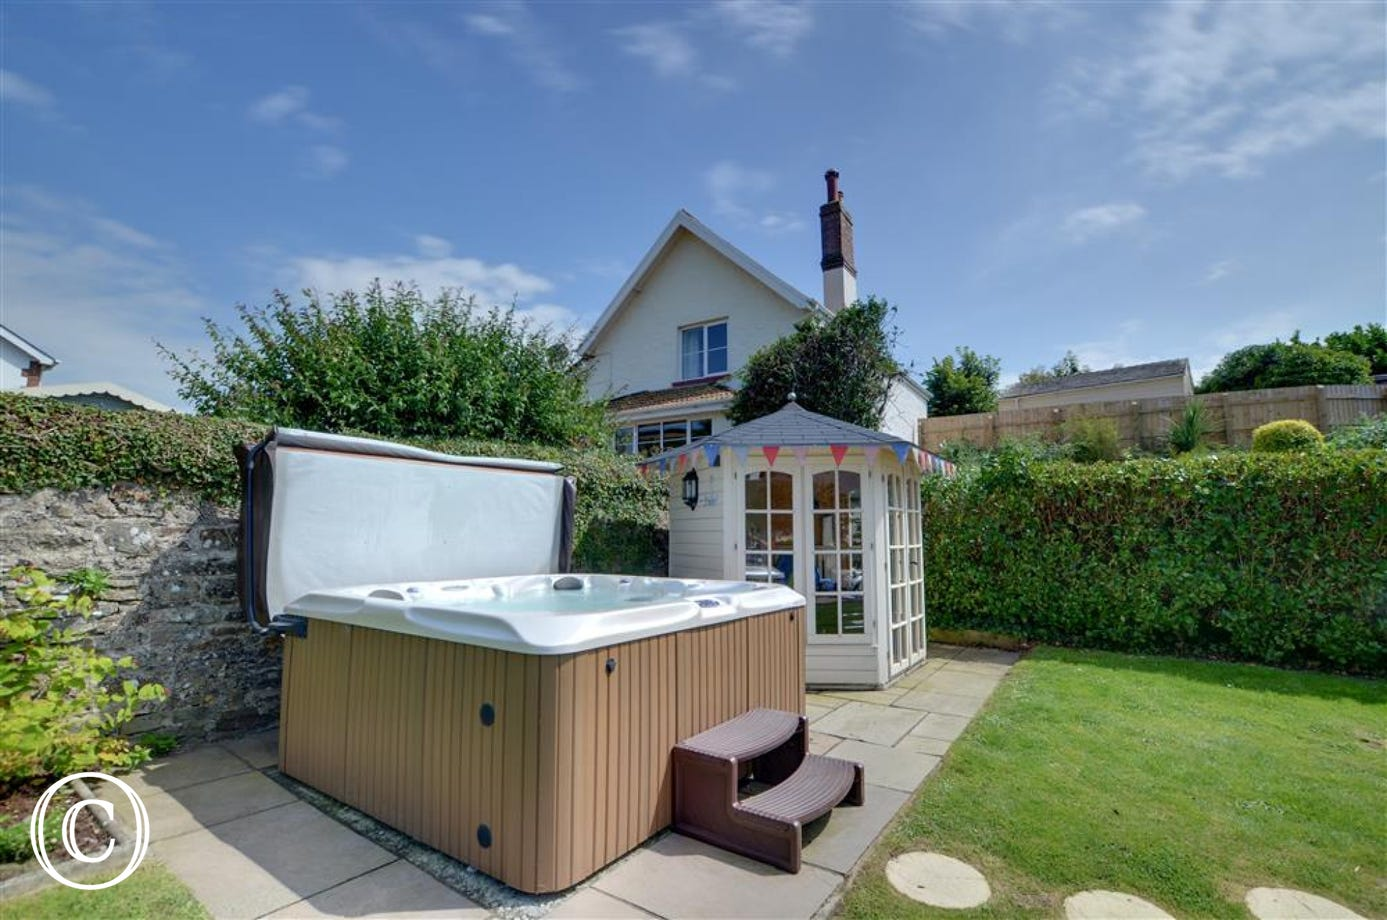 Jump into the hot tub after a day of exploring the beautiful North Devon coastline